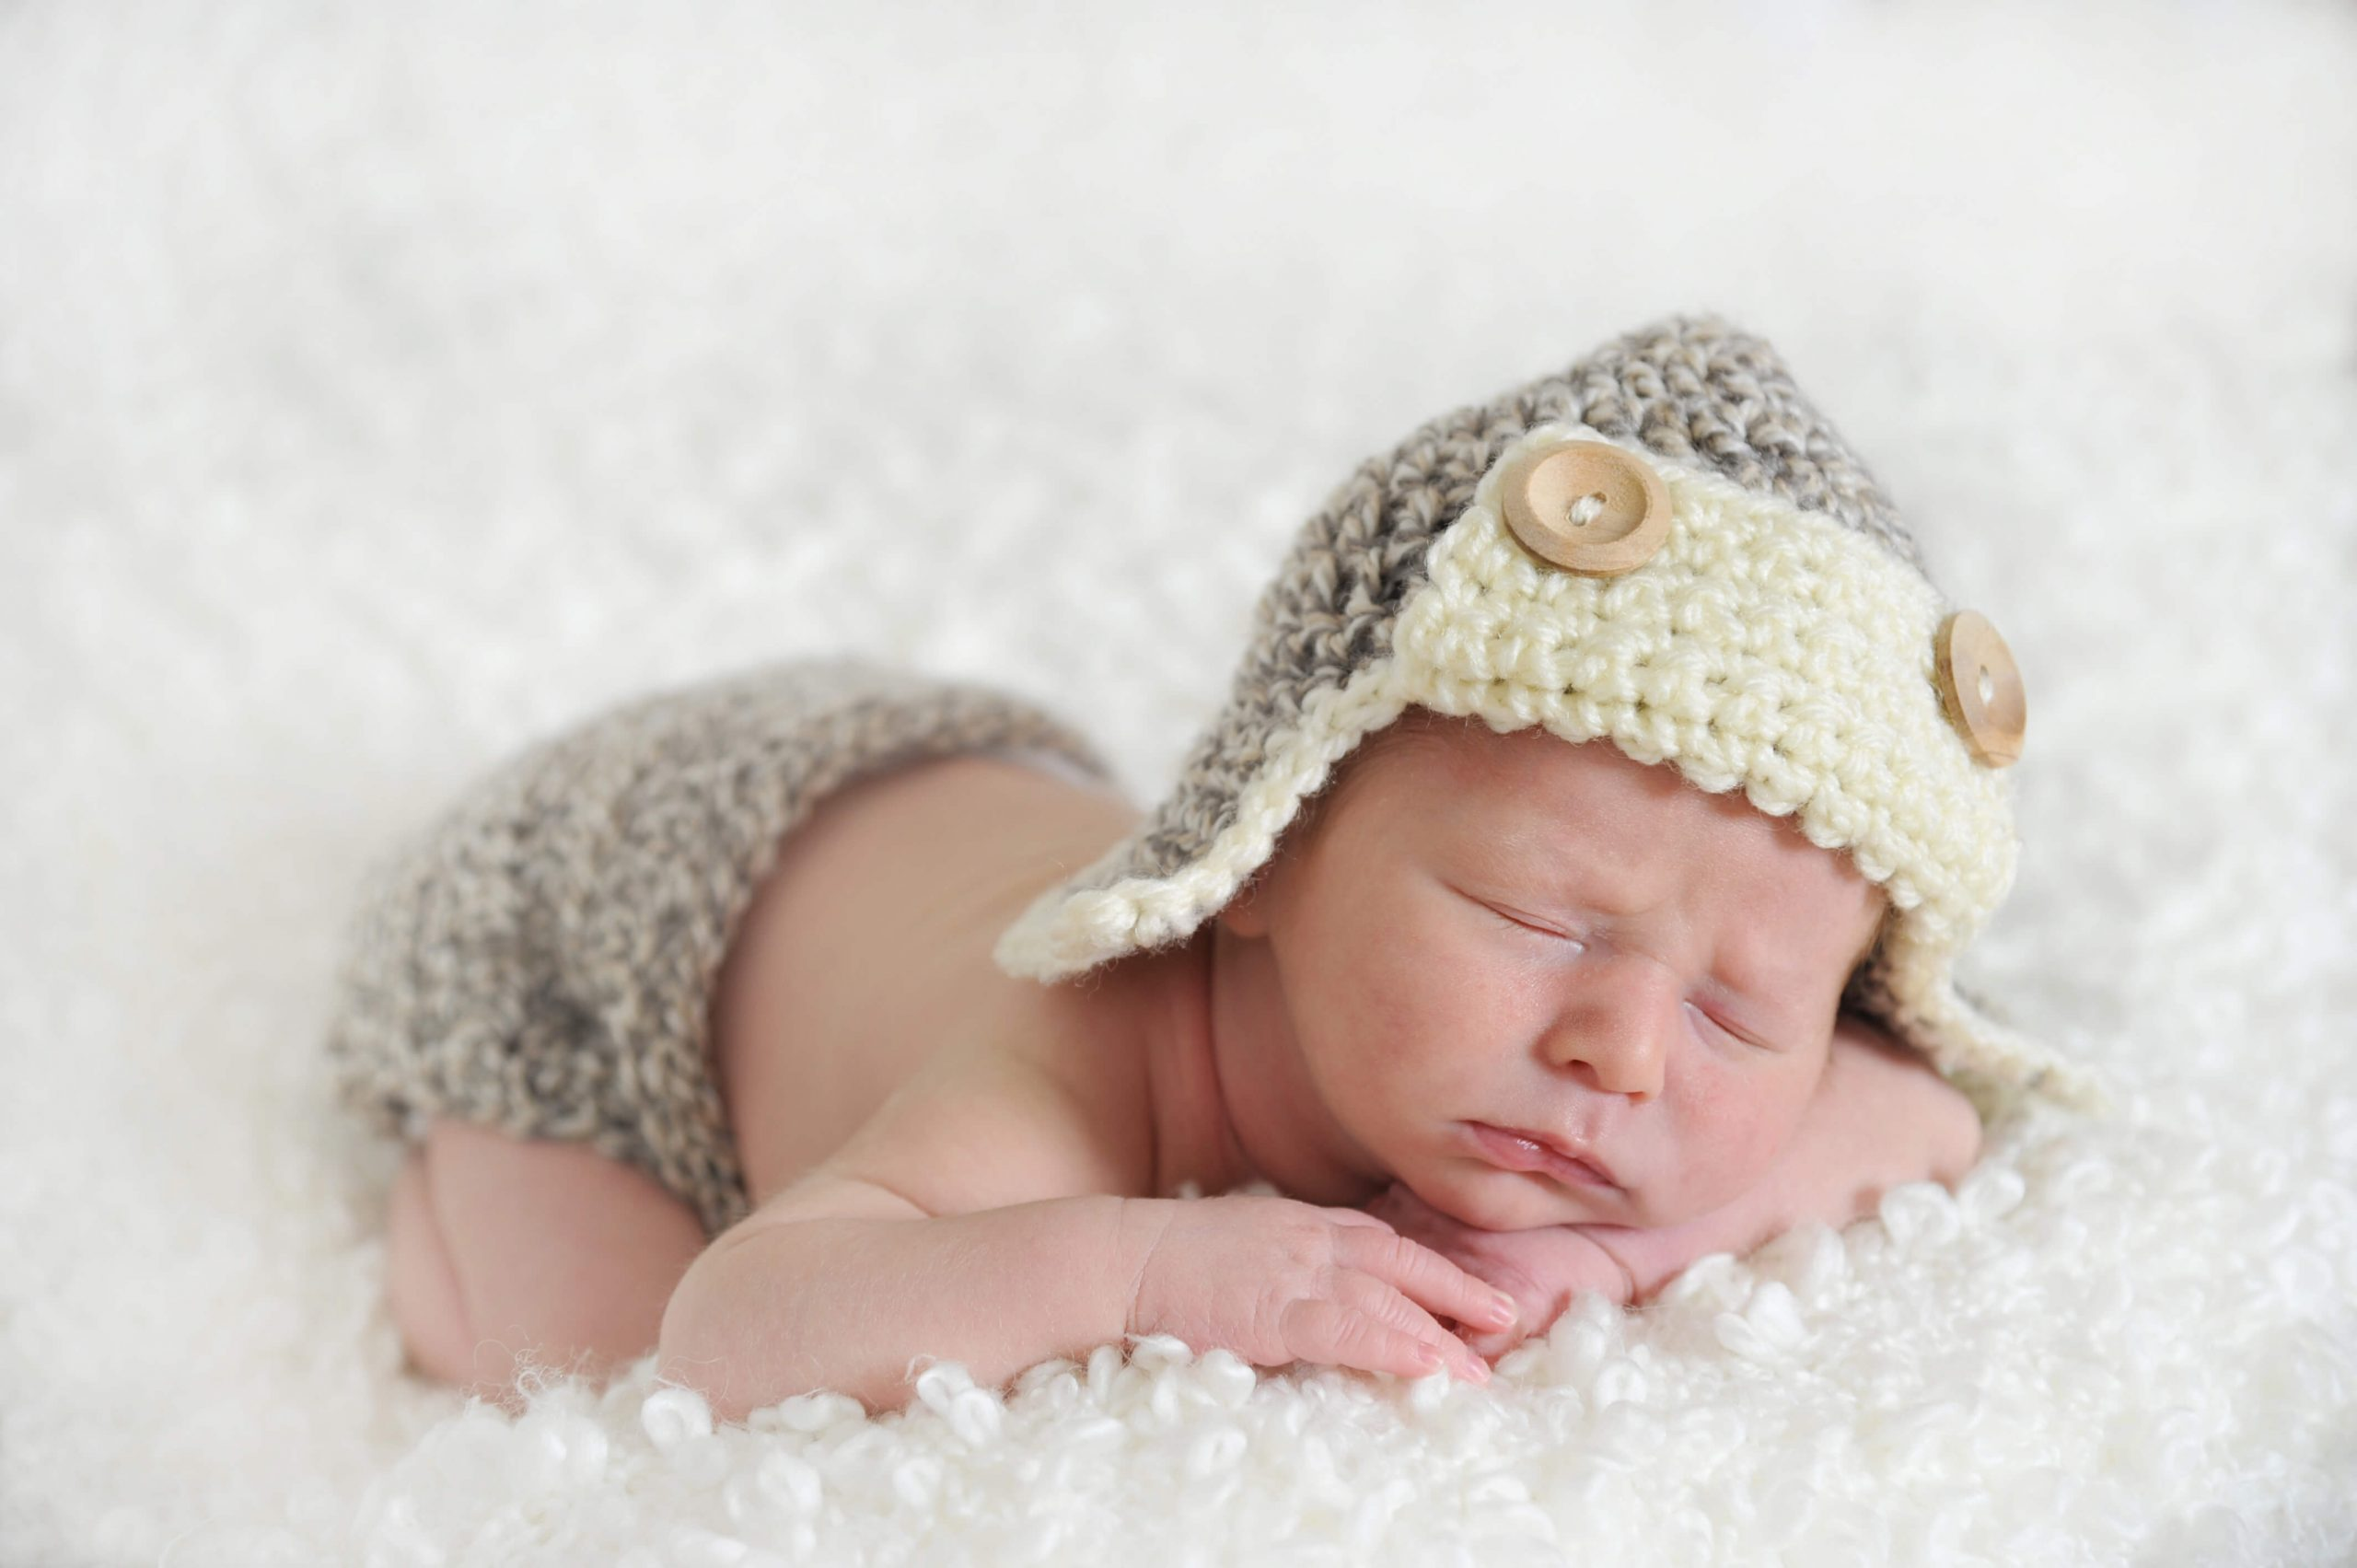 New Born Baby Lenon Herve Photography